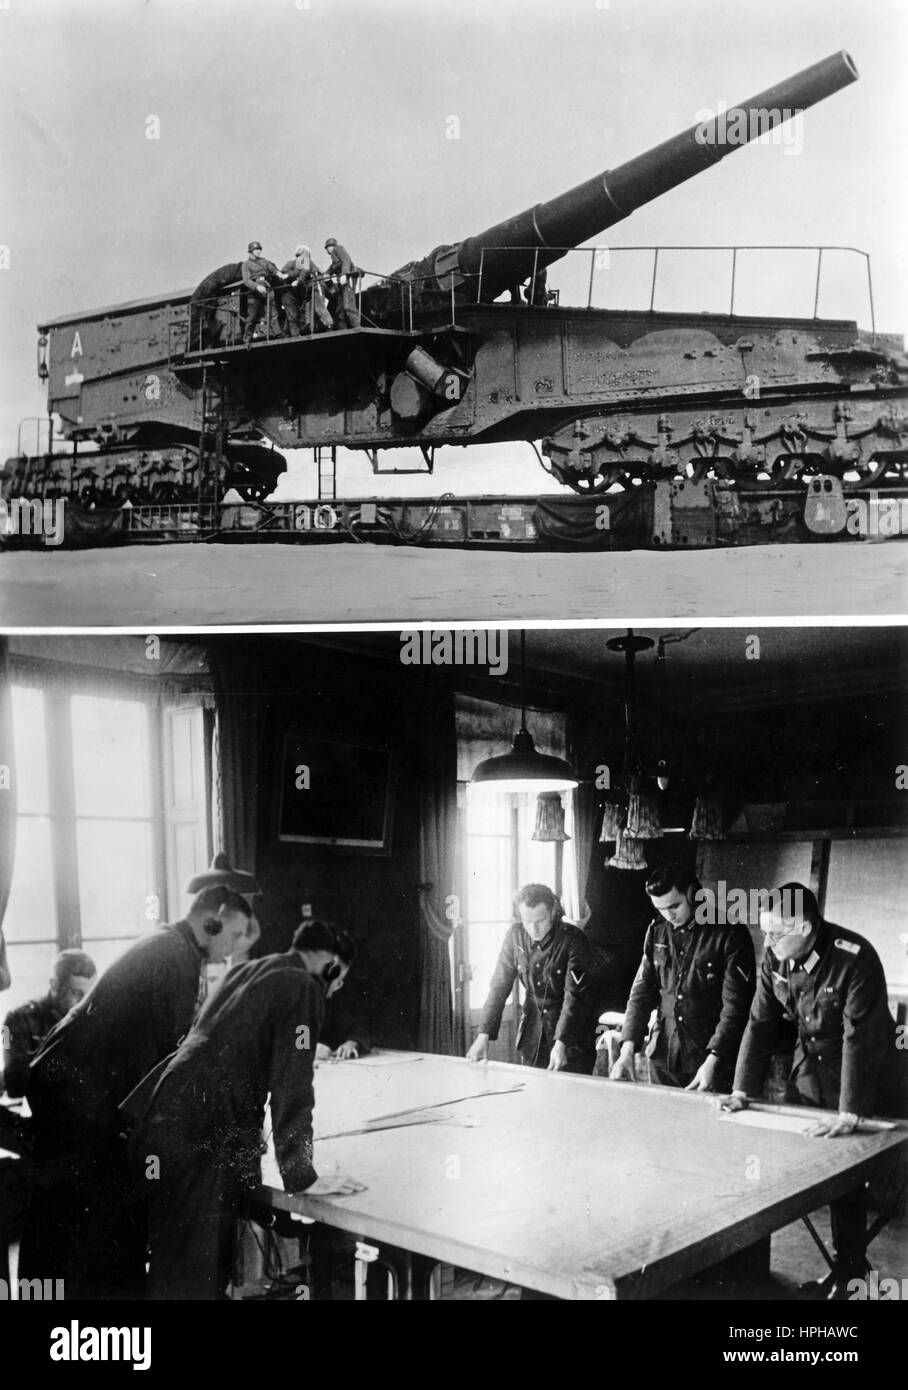 The Nazi propaganda image shows a heavy railway gun (above) and the command centre of a railway battery (below), - Stock Image